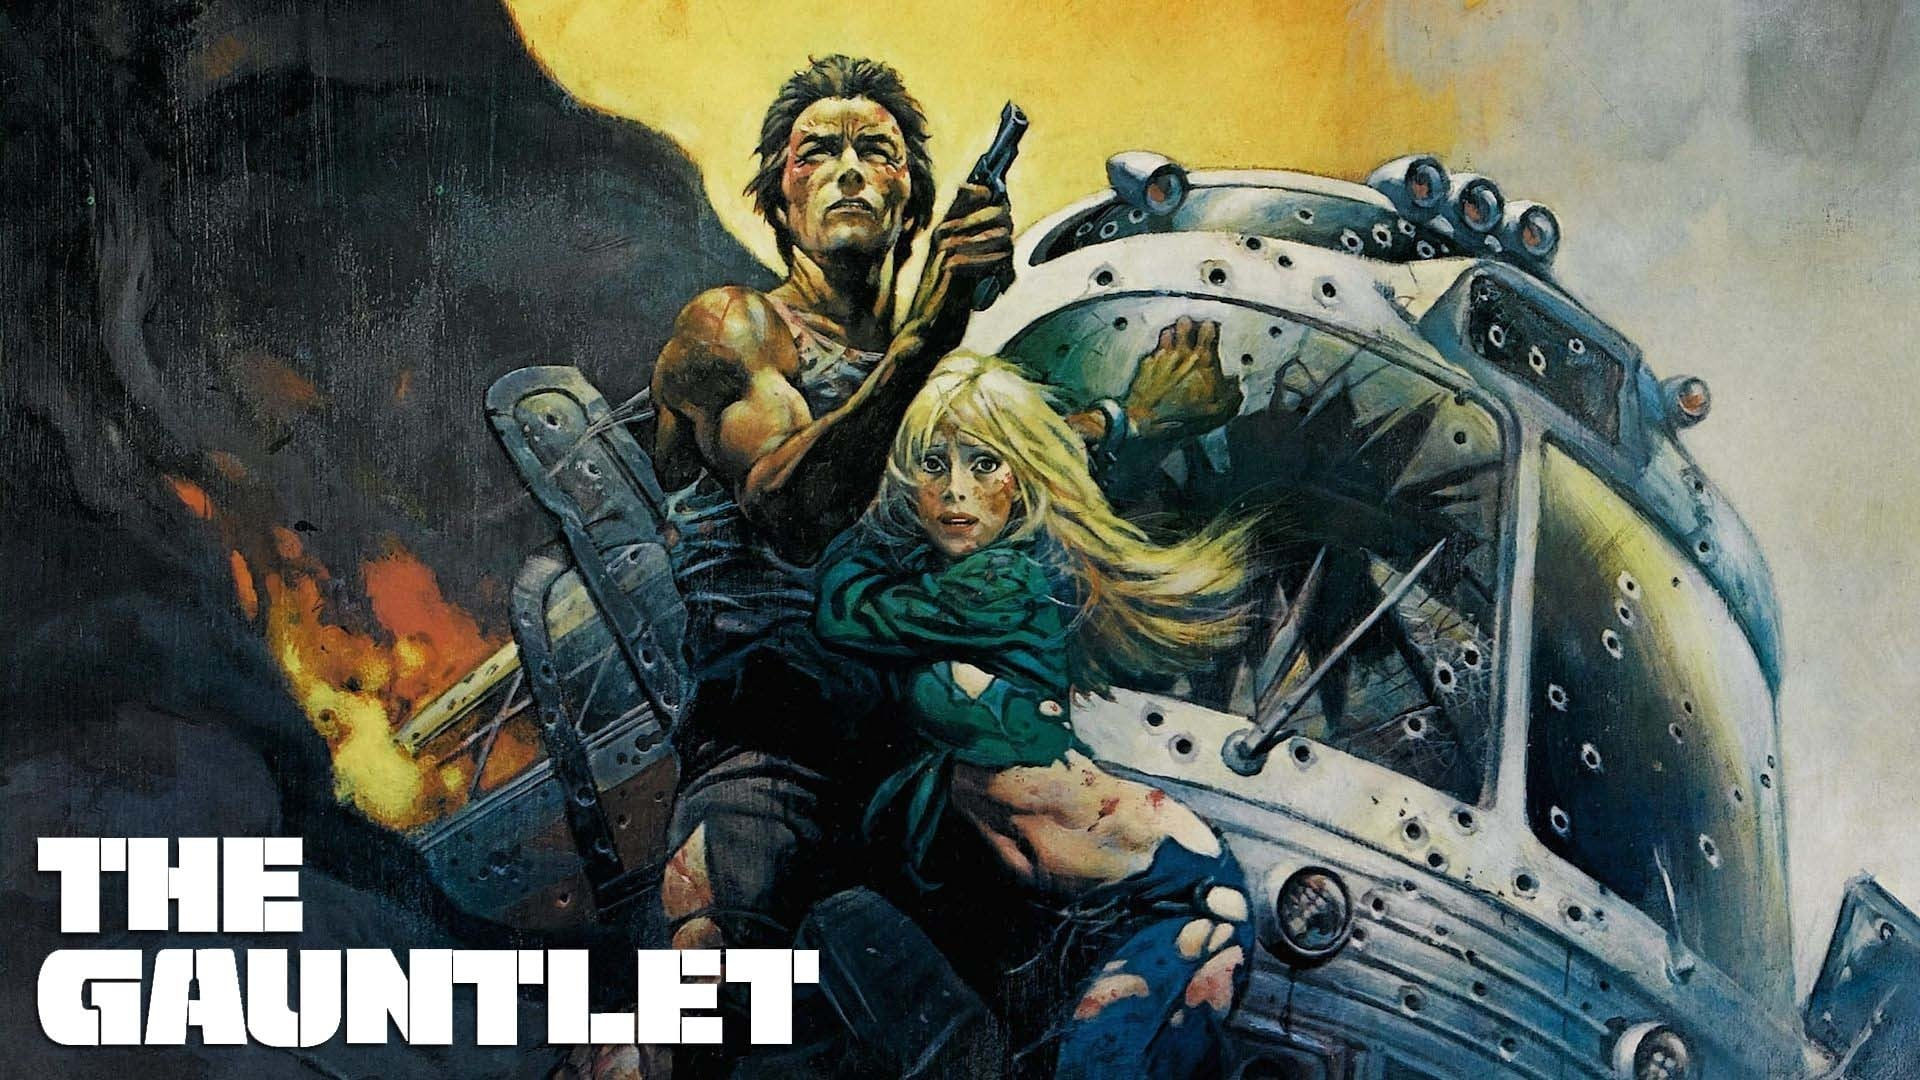 The Gauntlet (1977) 123 Movies Online